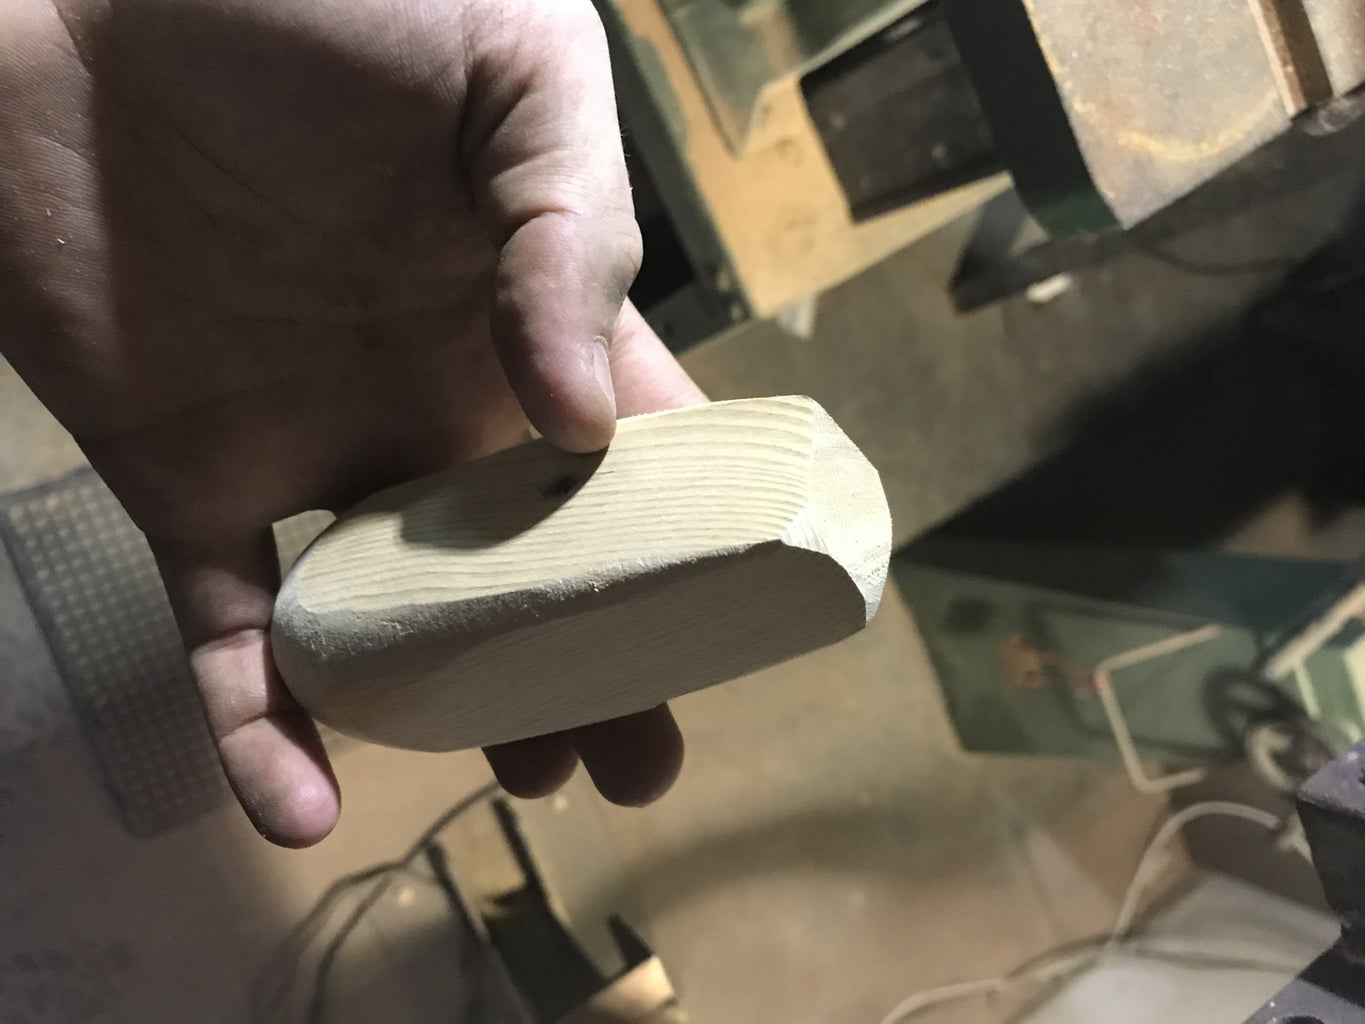 Making the Wooden Handle